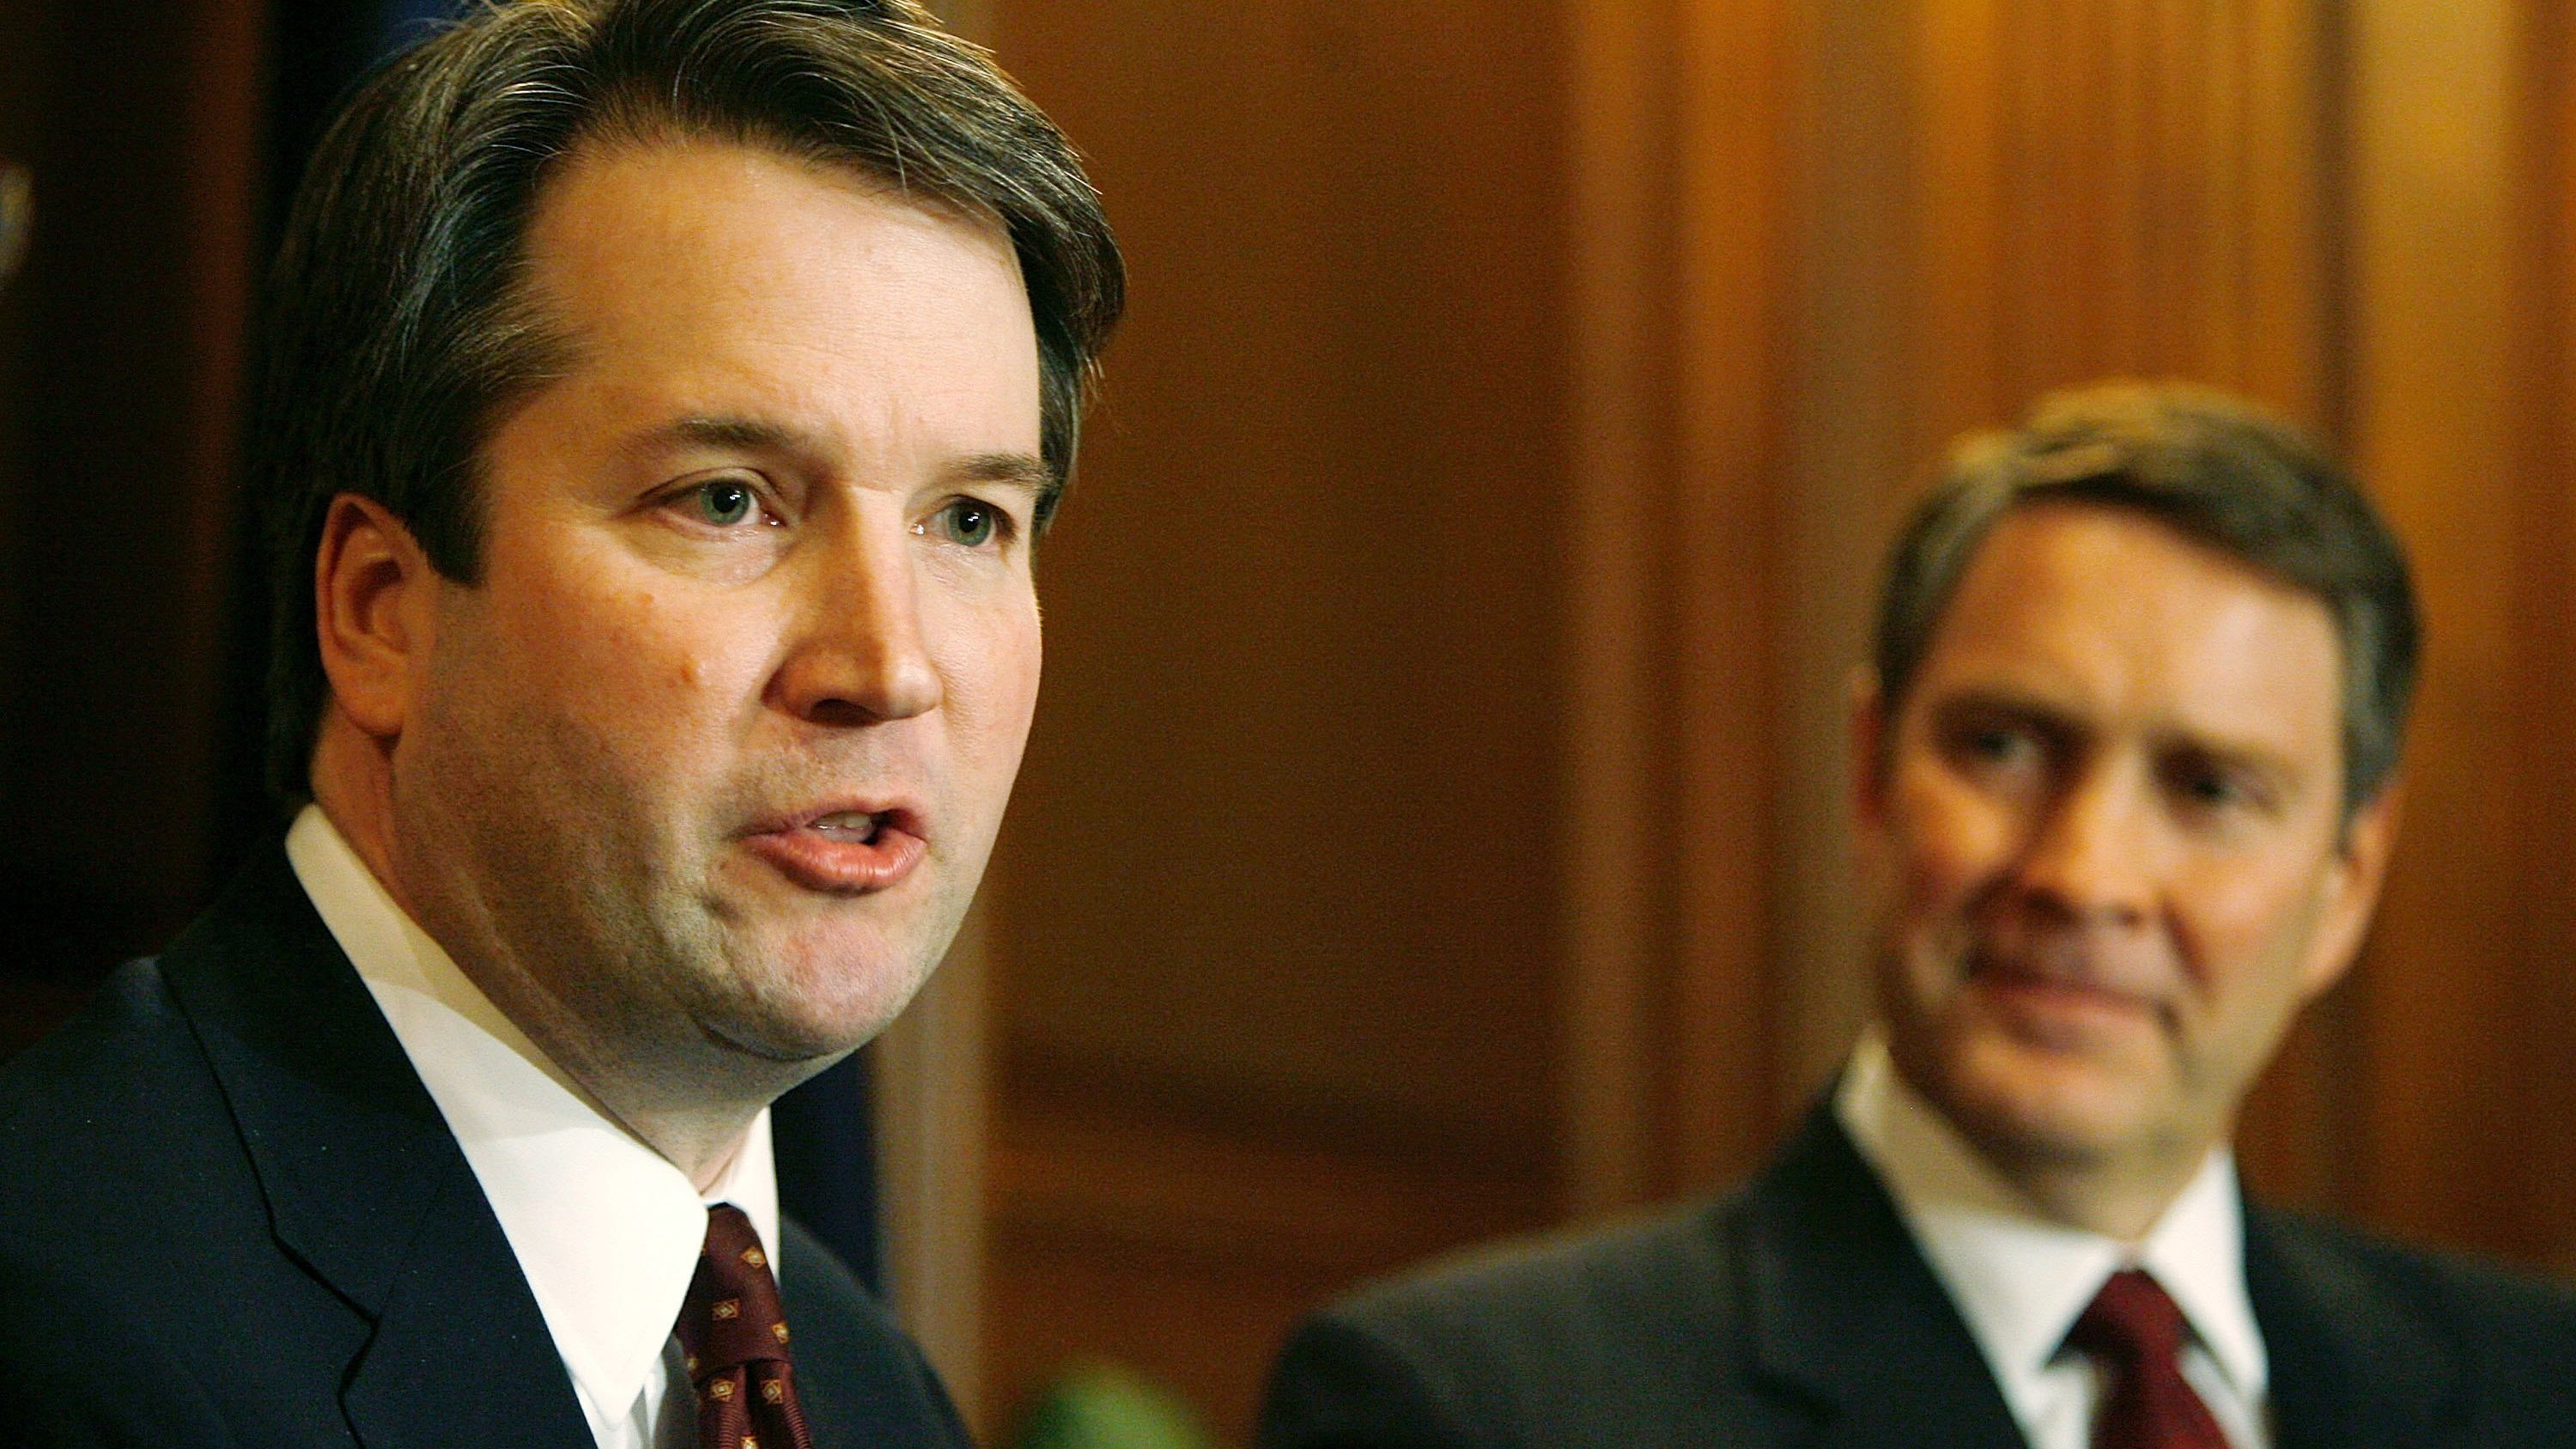 Brett Kavanaugh, left, speaks in 2006 when he was a nominee for the position he currently holds as a federal judge on the D.C. Circuit. Then-Senate Majority Leader Bill Frist of Tennessee looks on.